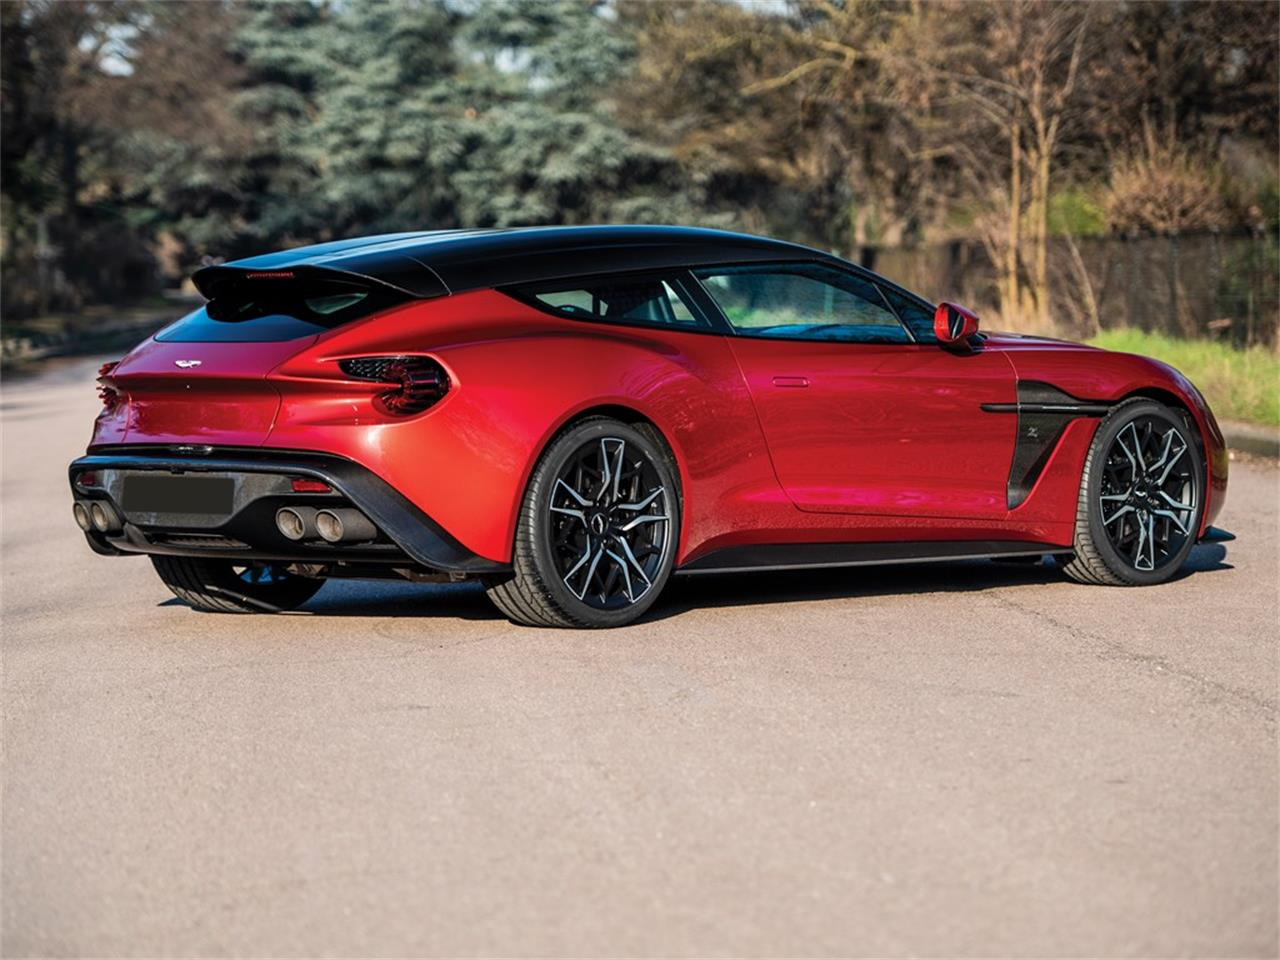 2019 Aston Martin Vanquish for sale in Cernobbio, Other – photo 2